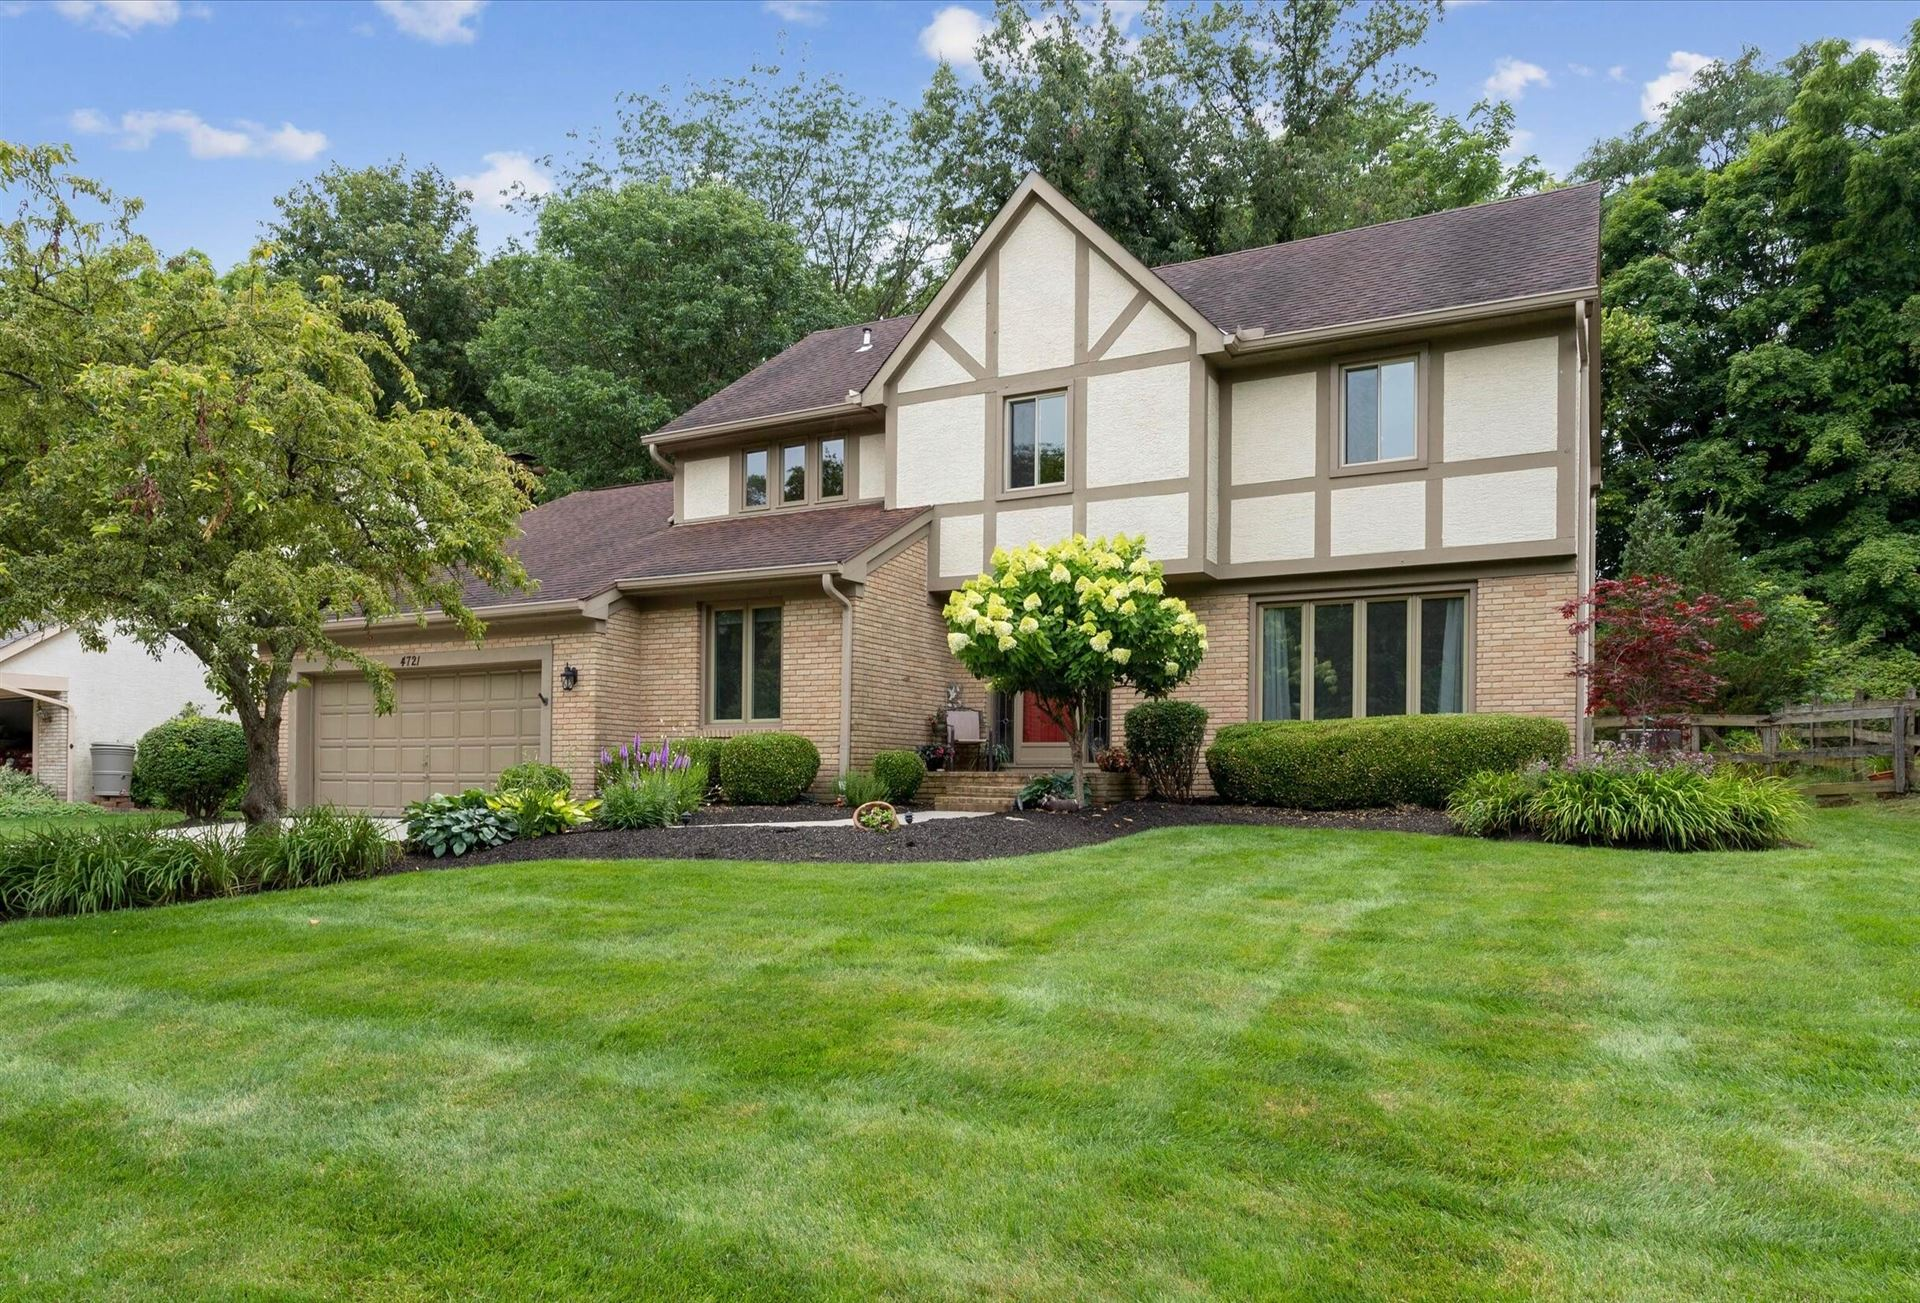 Photo of 4721 Donegal Cliffs Drive, Dublin, OH 43017 (MLS # 221028059)